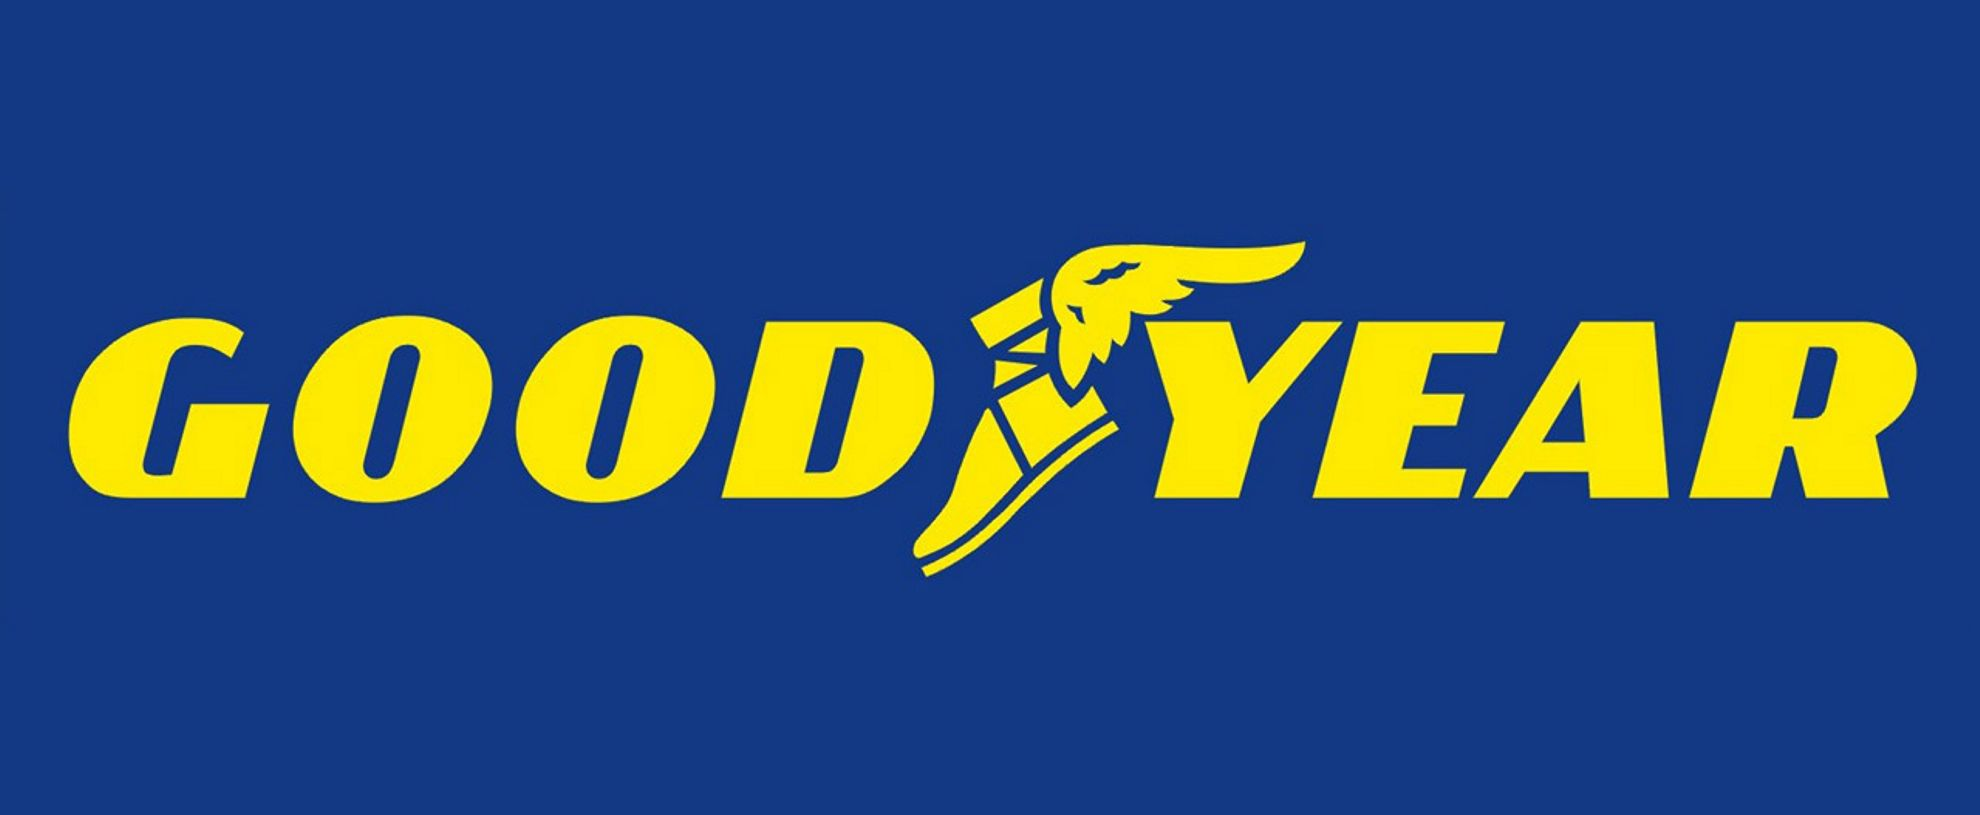 Goodyear Tyres Goodyear Tyres Celebrates 60th Anniversary Supplying Tires To Nascar